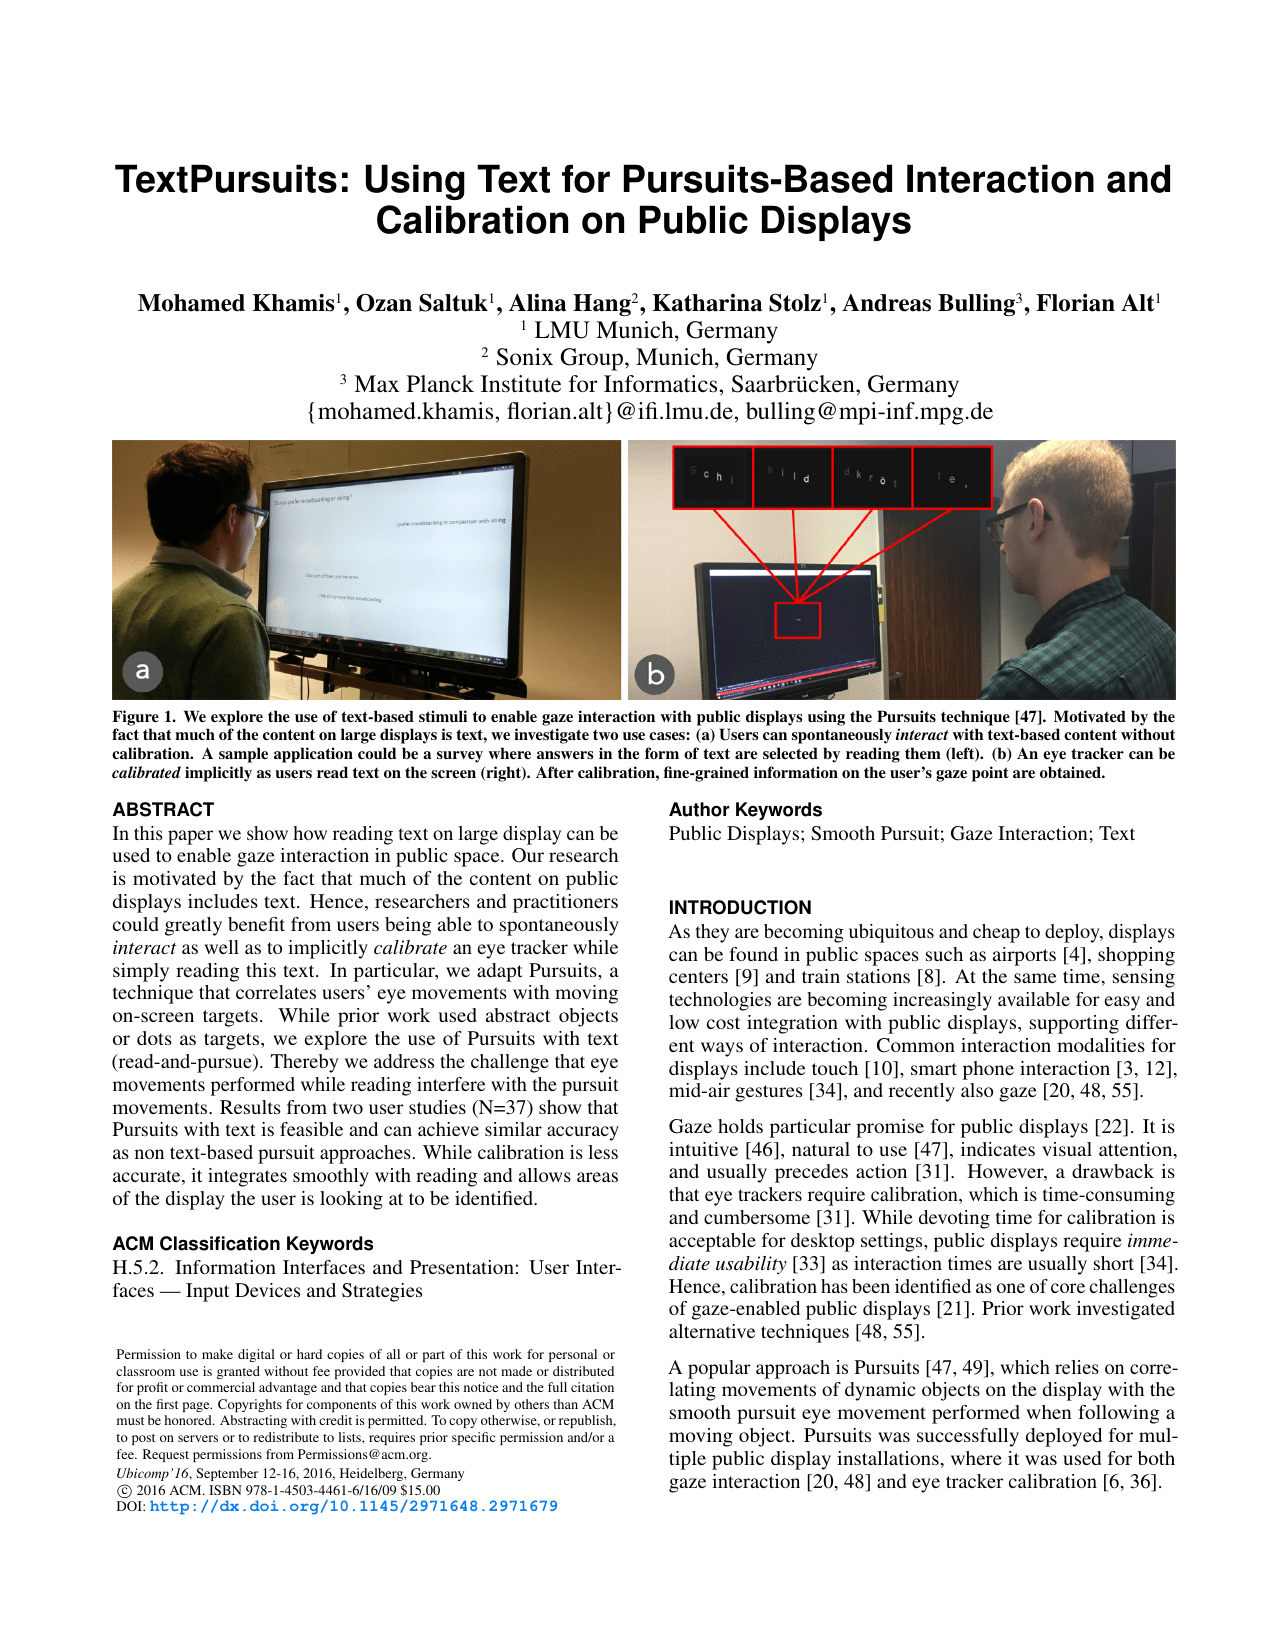 TextPursuits: Using Text for Pursuits-Based Interaction and Calibration on Public Displays